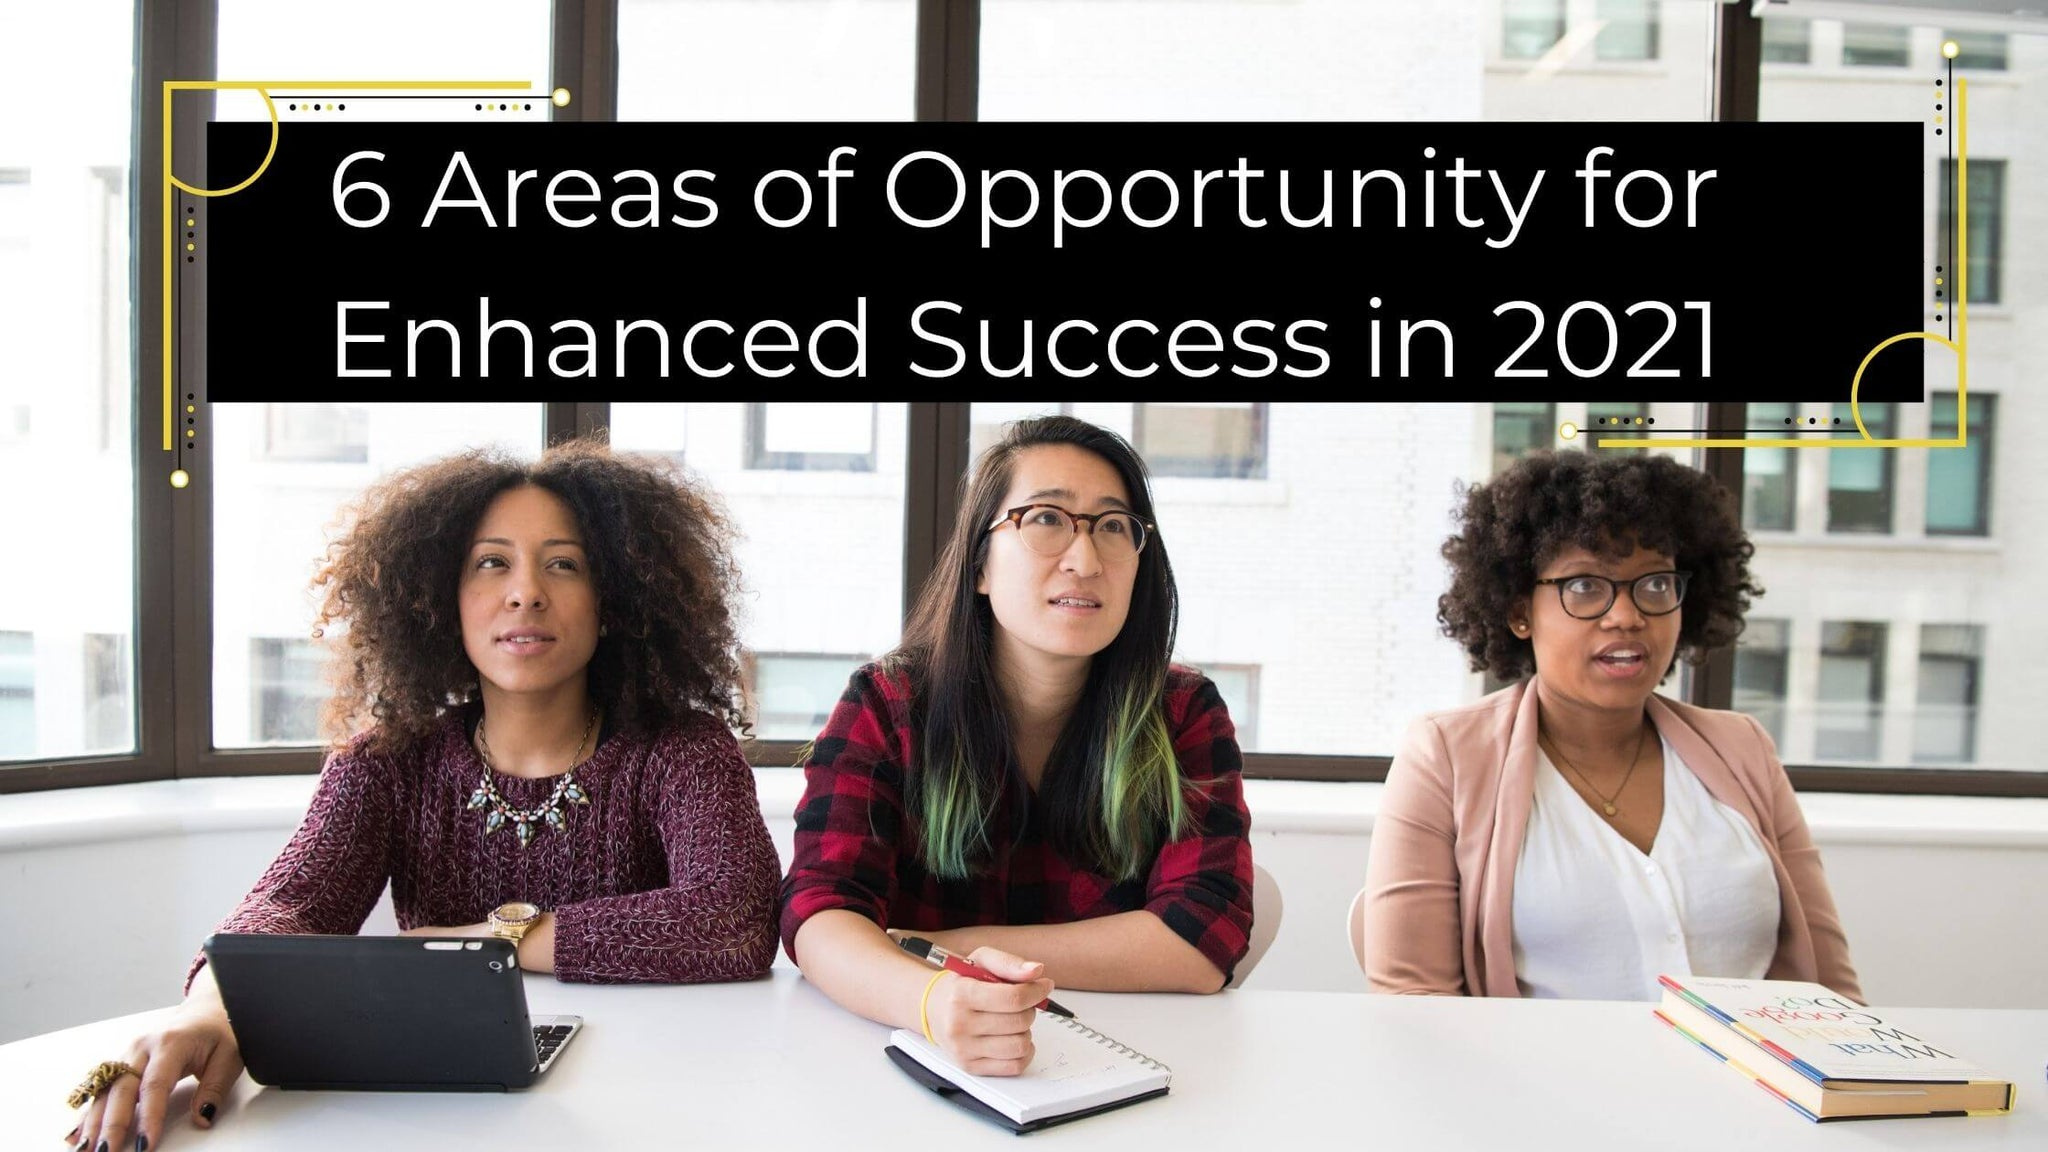 SHown is an image of 3 business women being successful and taking charge of their life.